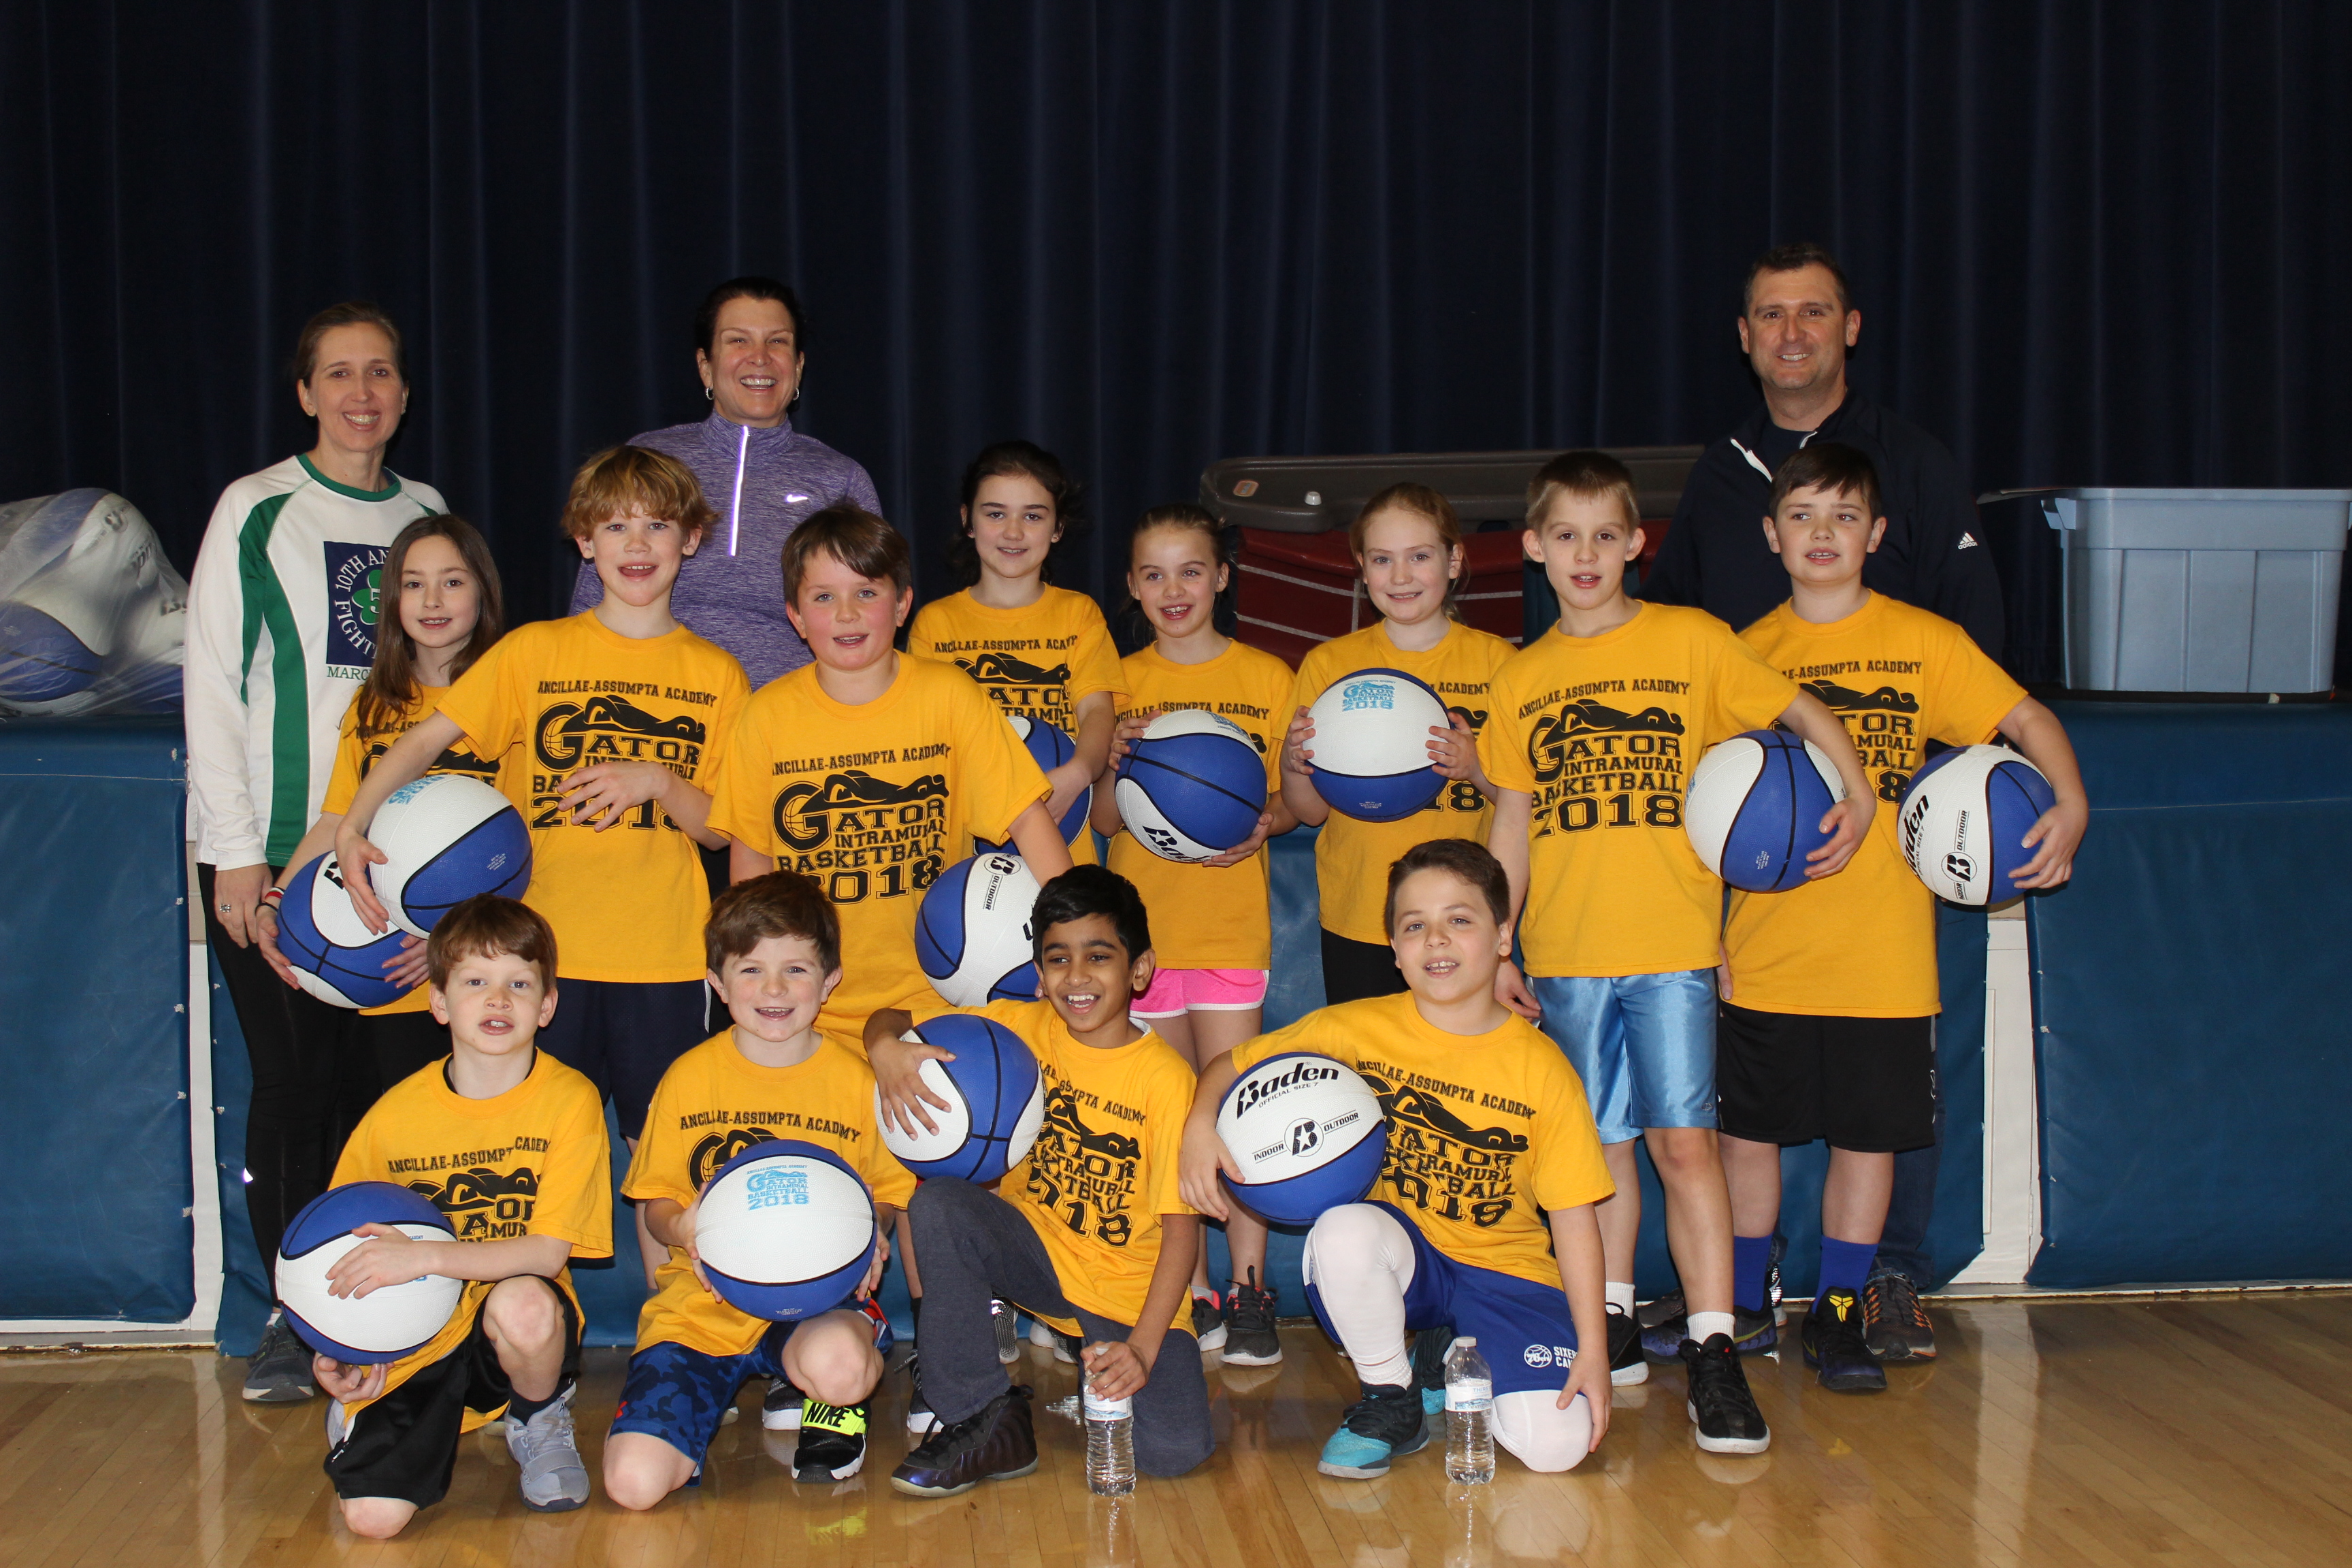 A group of students and teachers in a gym holding basketballs